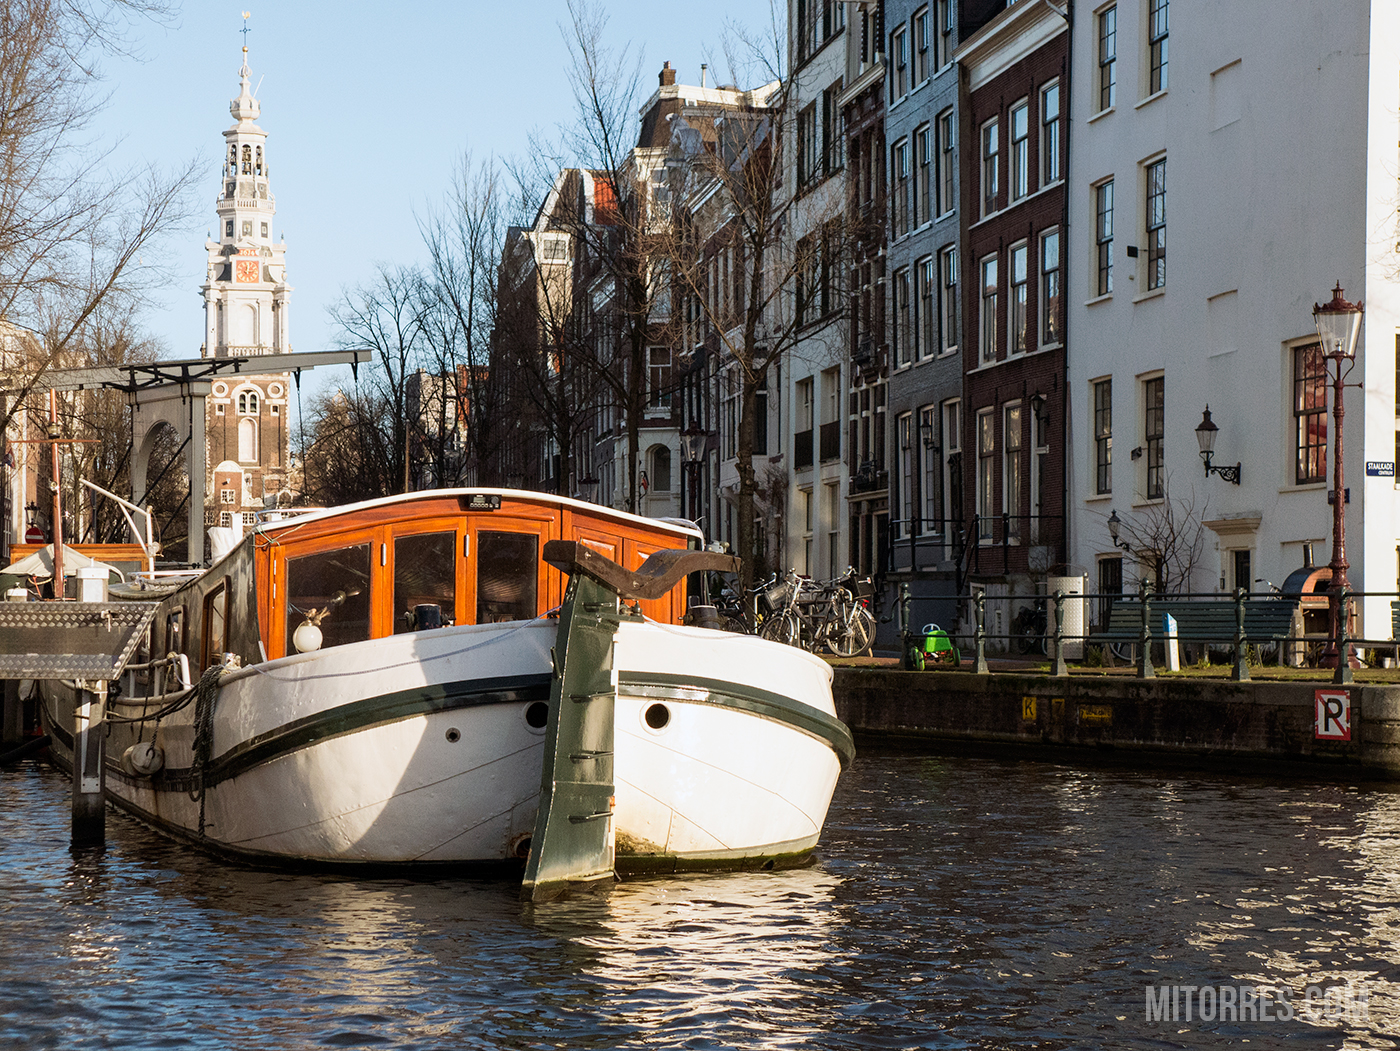 Beautiful canals and boats all around Amsterdam.